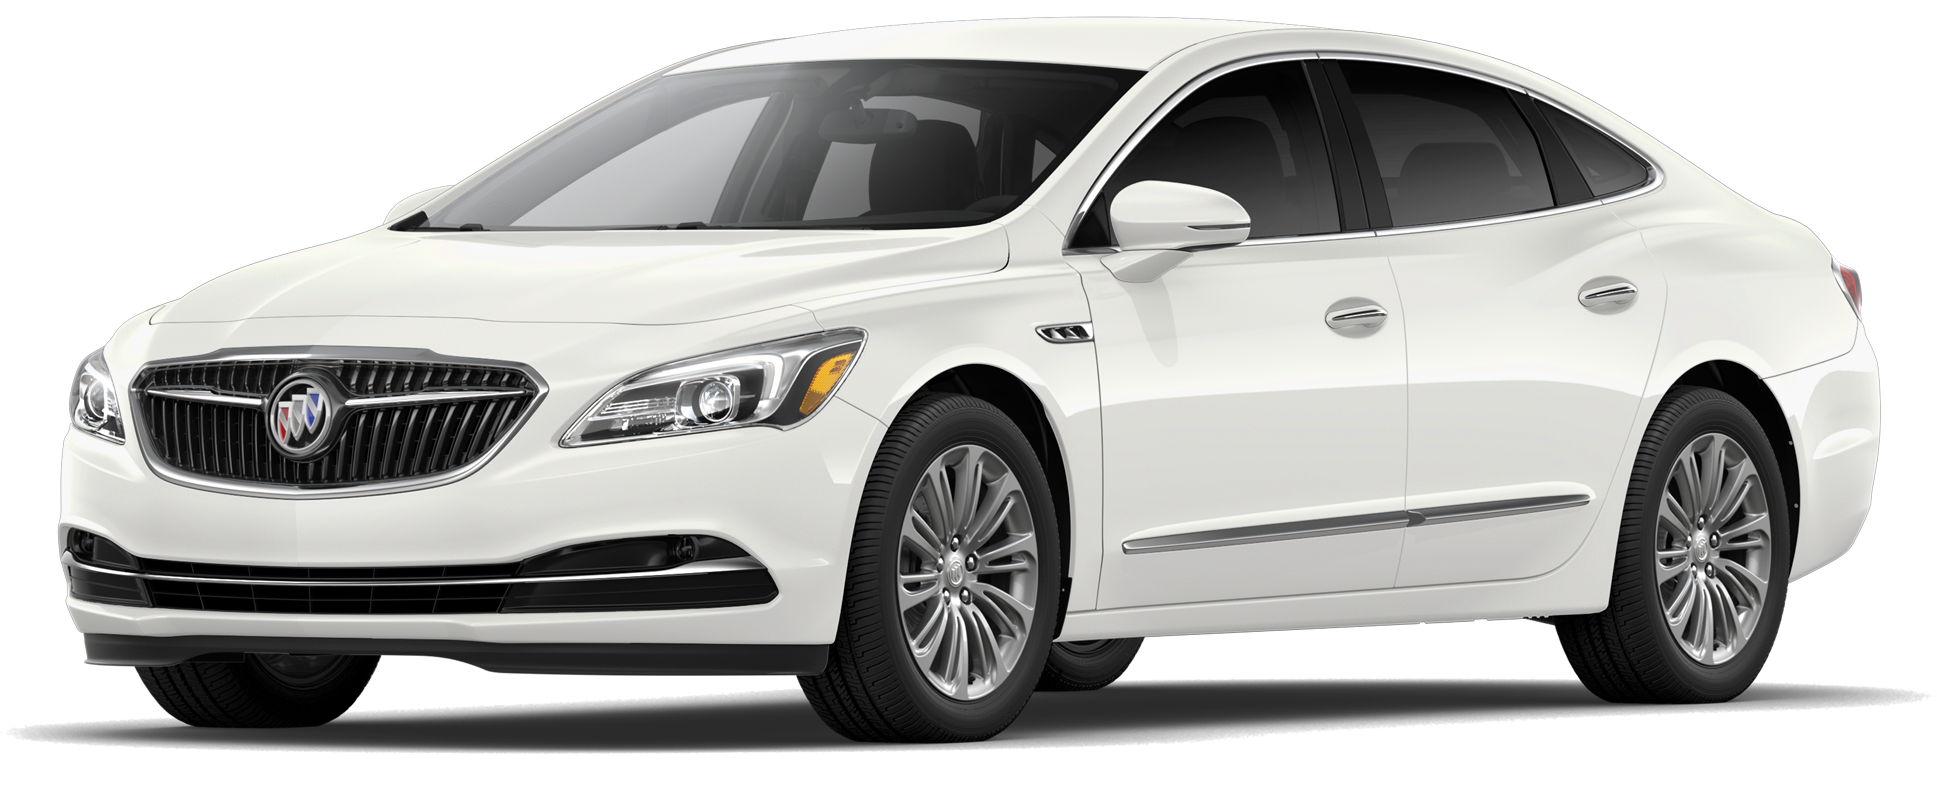 Buick LaCrosse: Using ABS